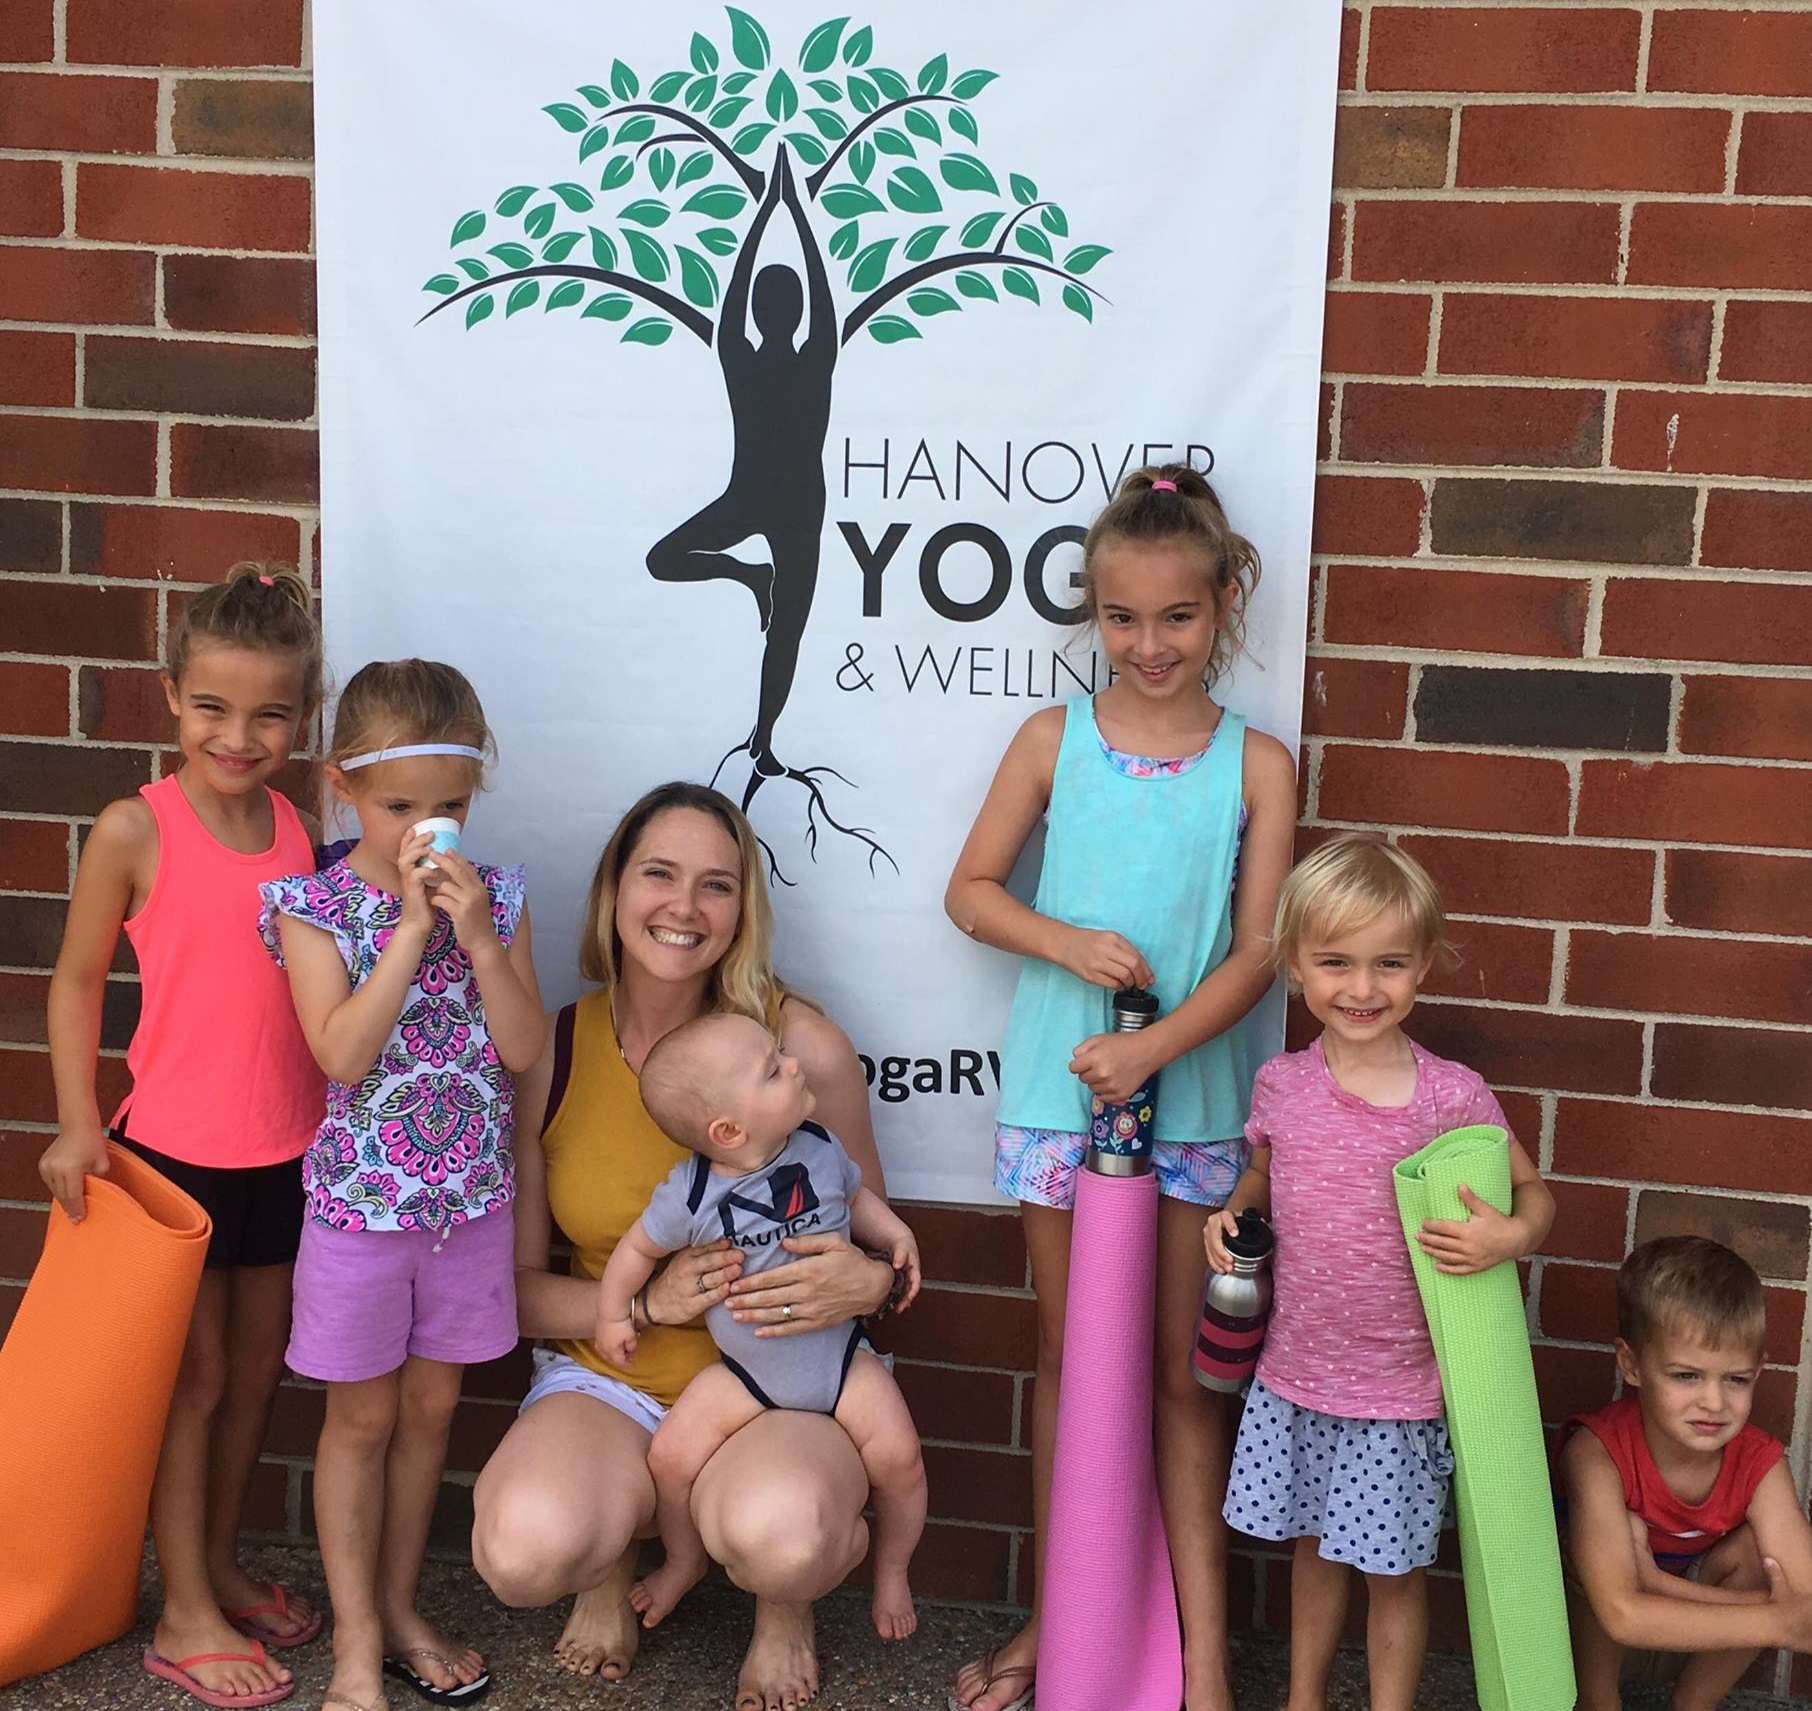 Youth Yoga - Yoga classes for Kids and Tweens throughout the community!